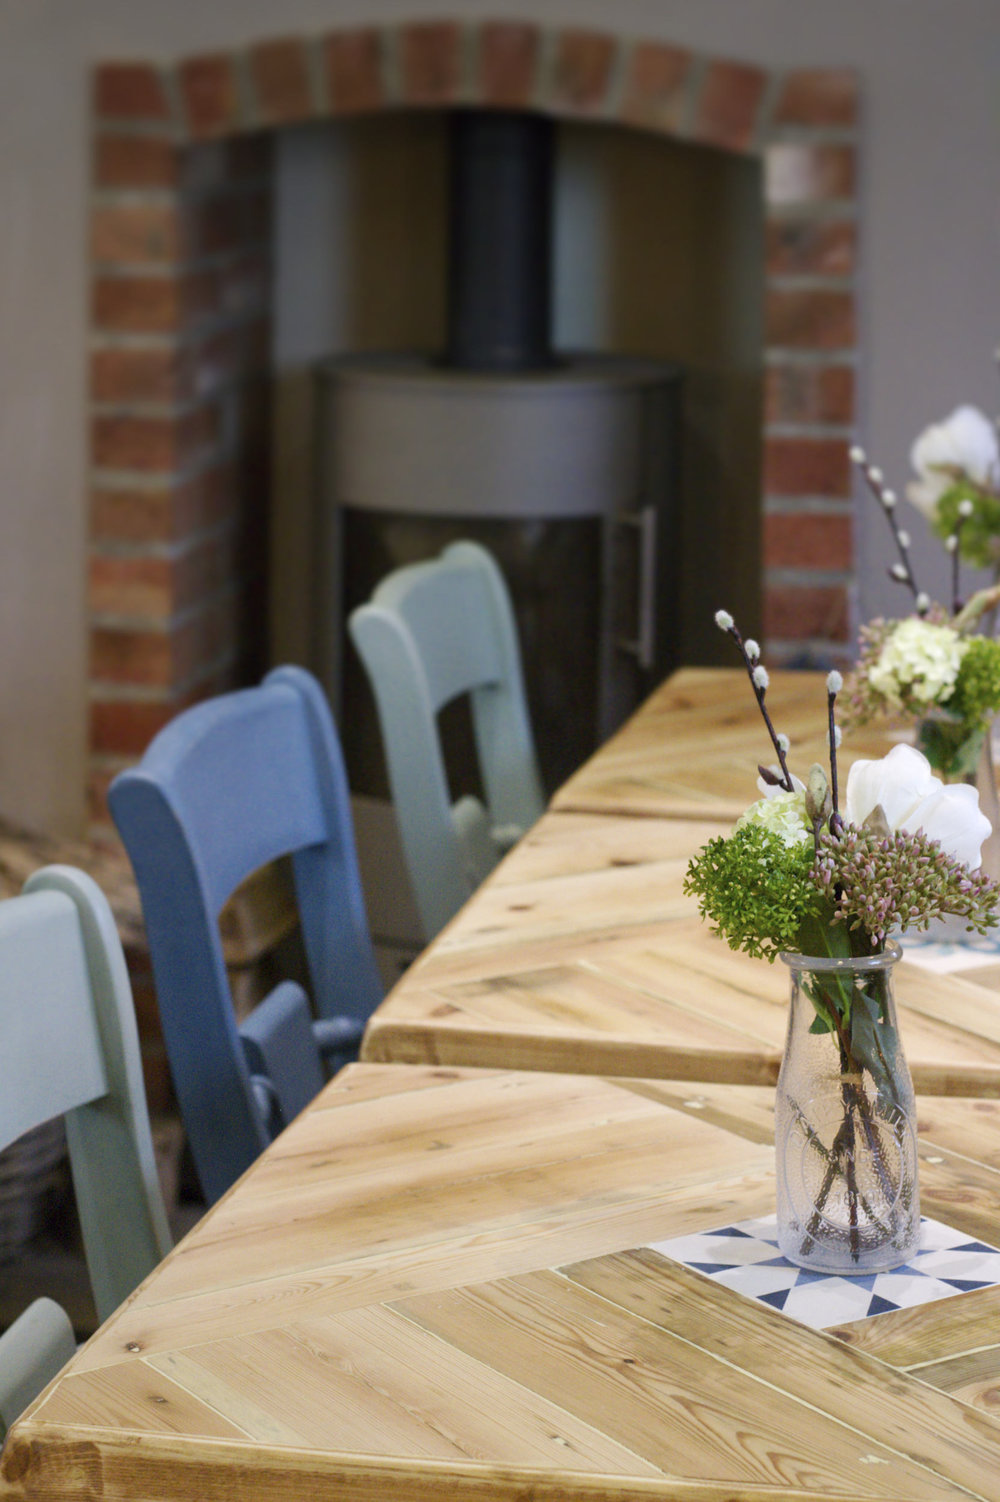 Seating and table in the Bottlekiln café